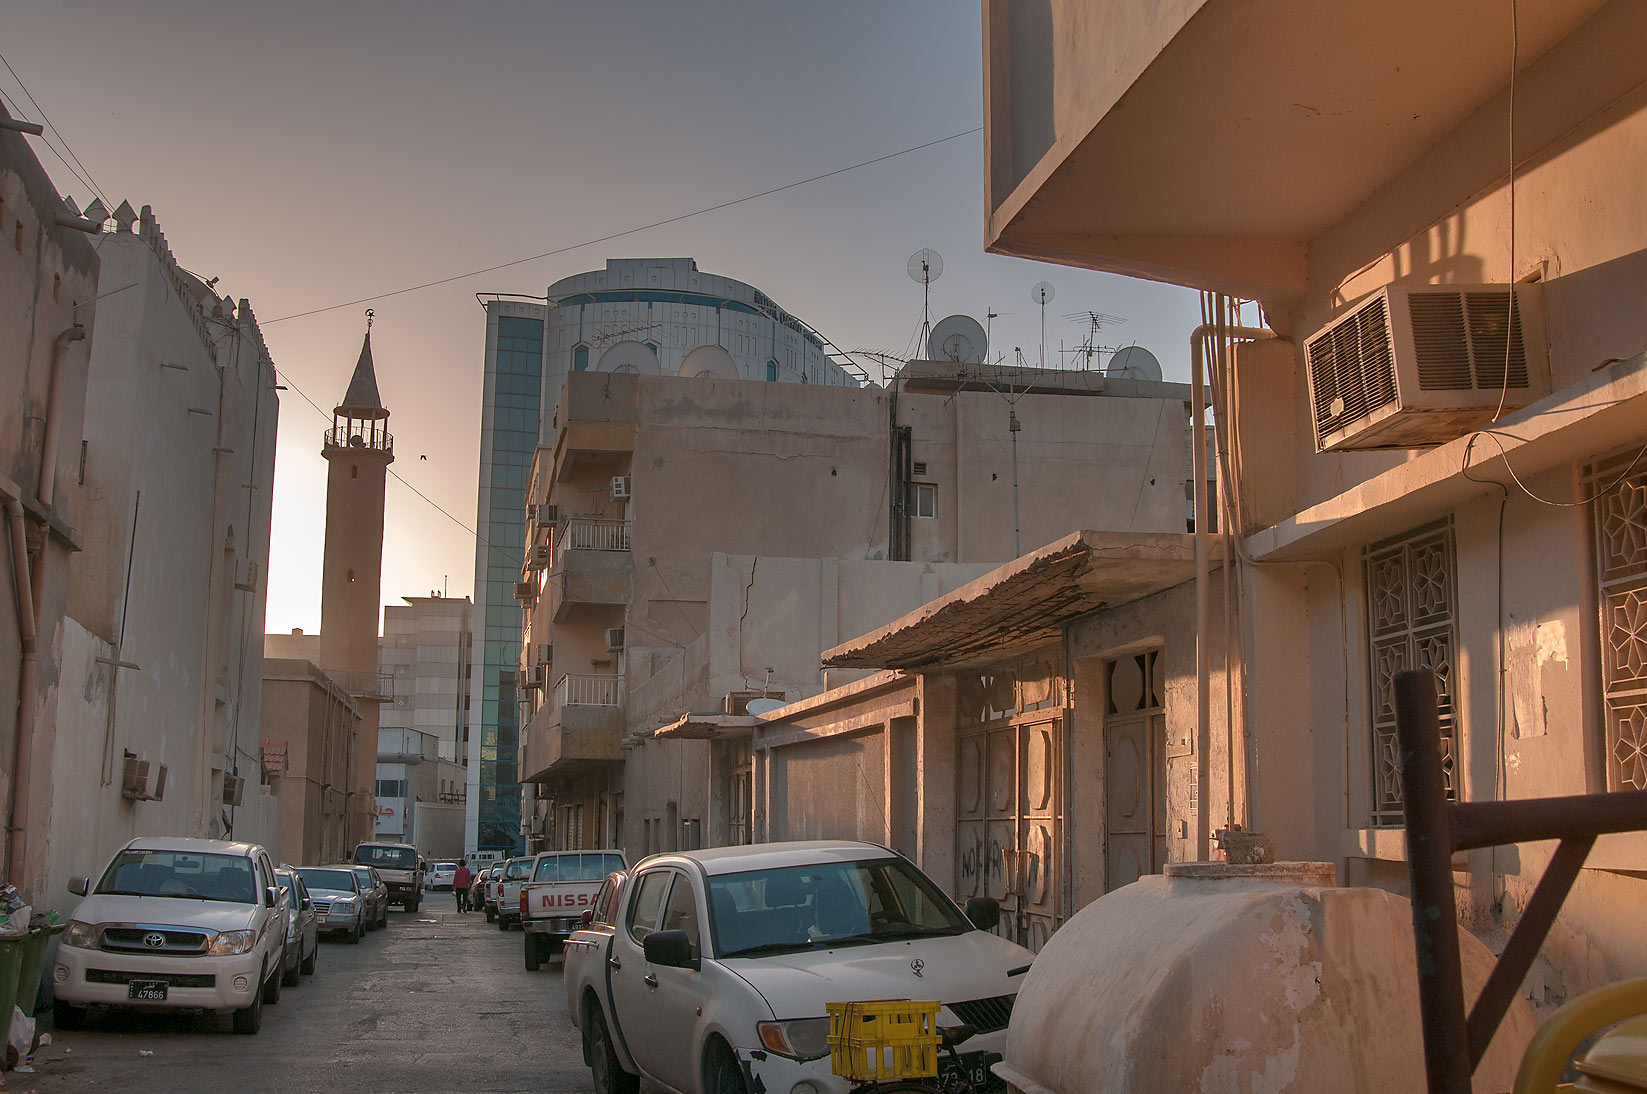 Al Maymoun St., view to the east, Musheirib area. Doha, Qatar